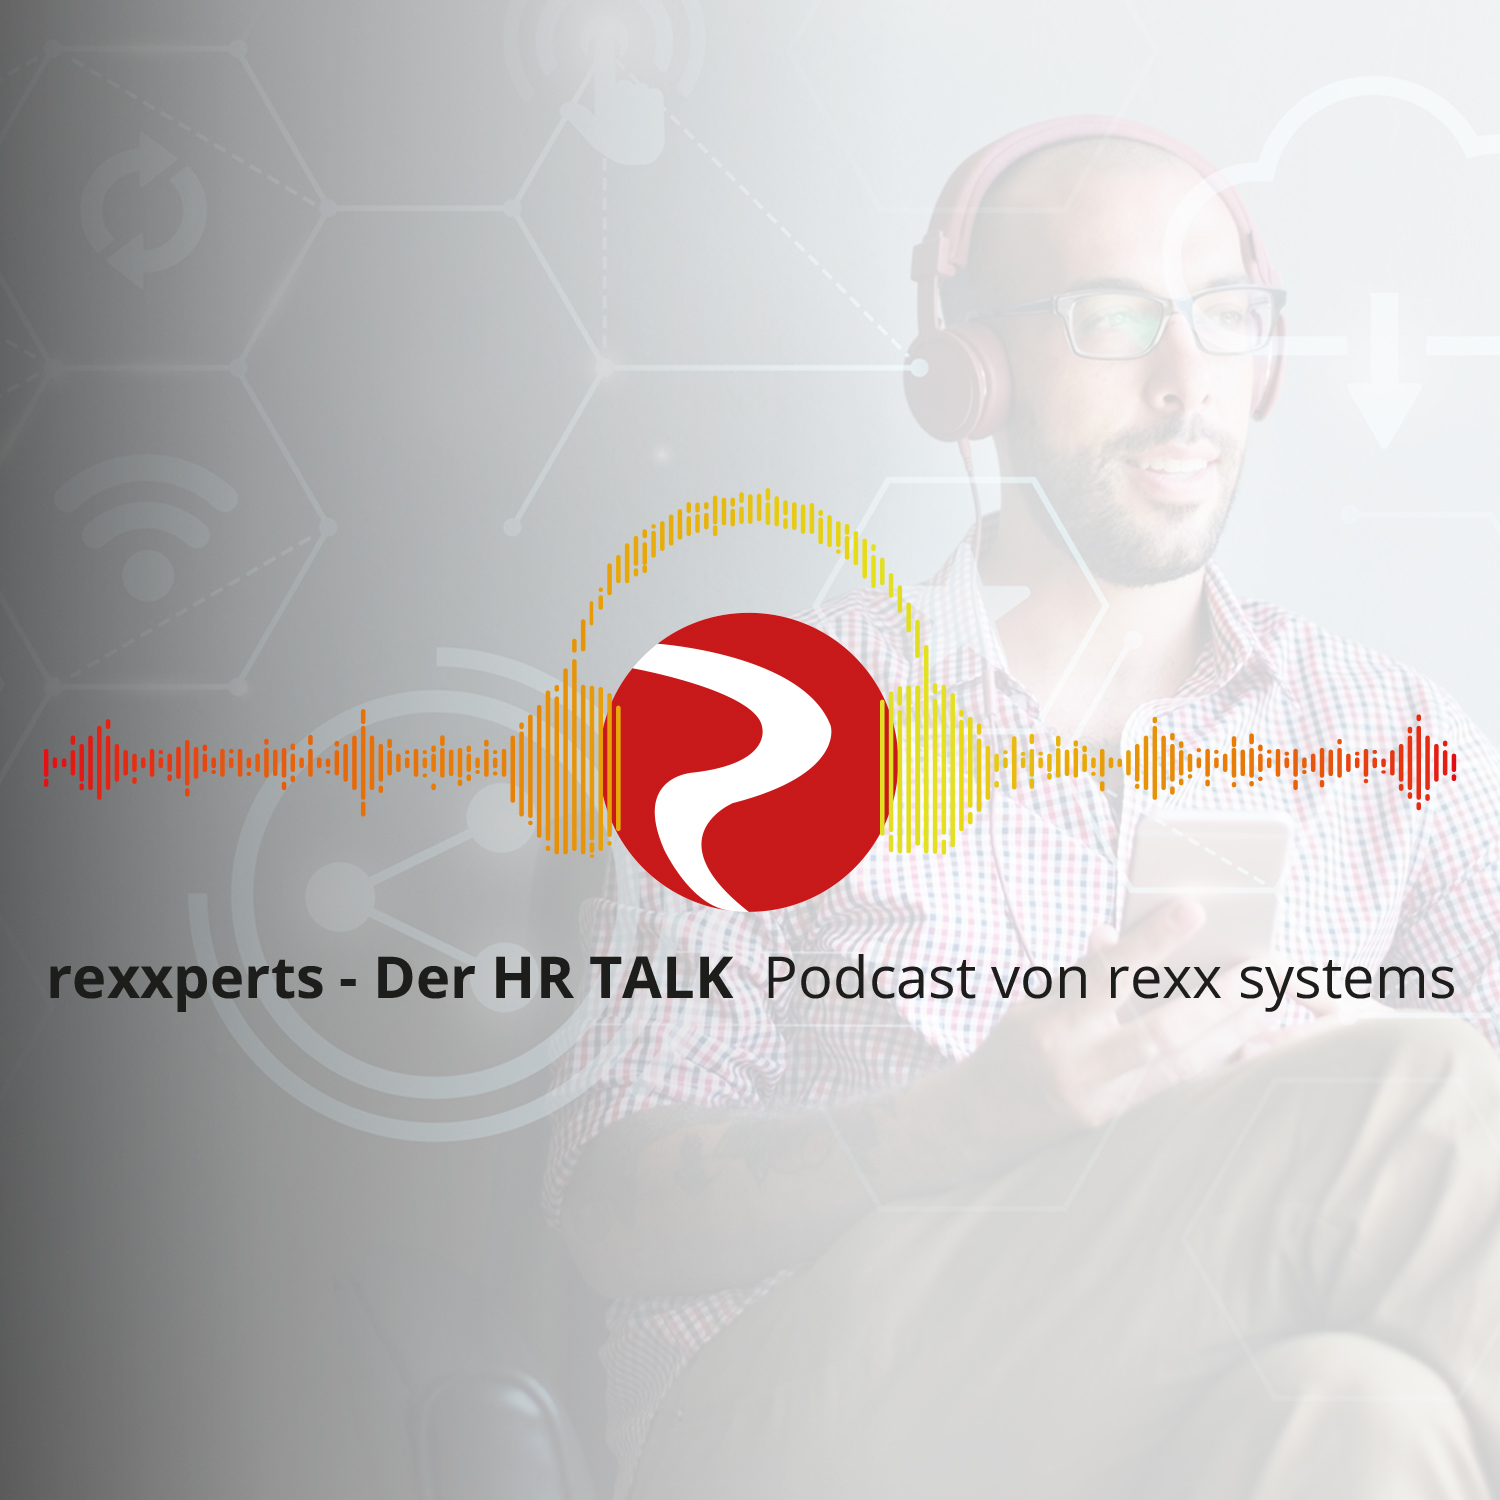 rexxperts - Der HR Talk Podcast